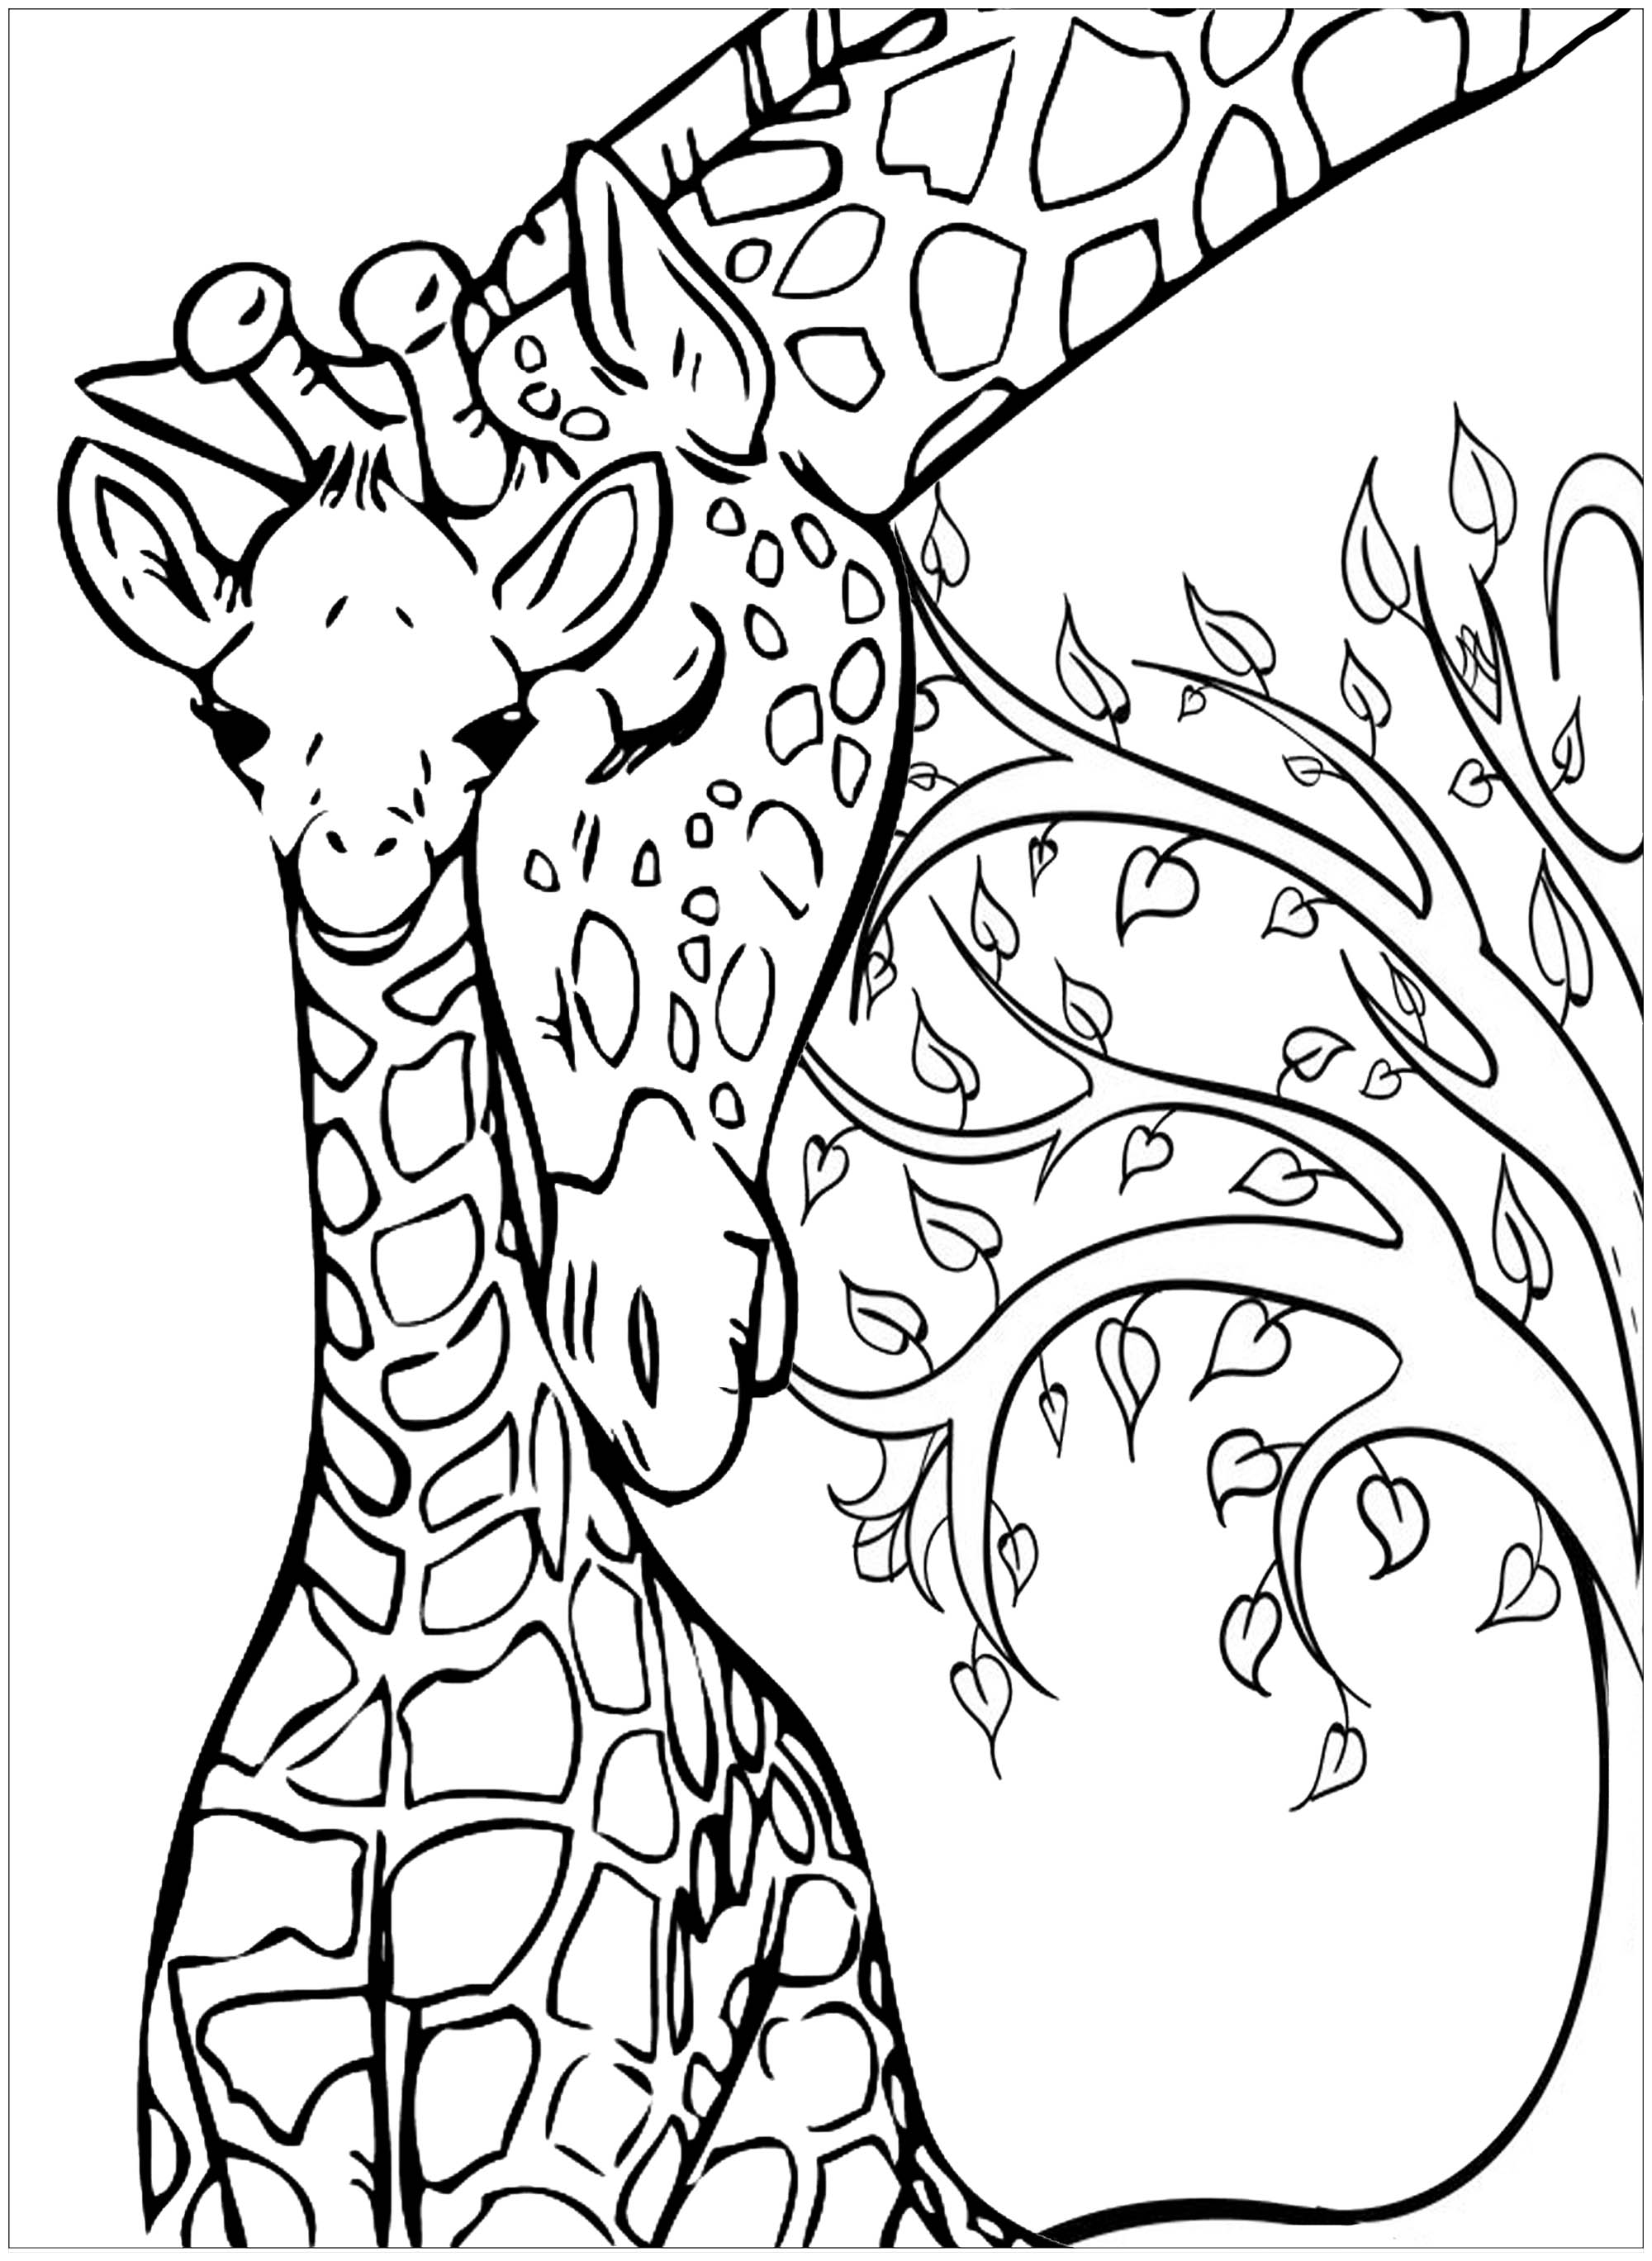 colouring pages of giraffe baby giraffe and his mother giraffes adult coloring pages giraffe pages colouring of